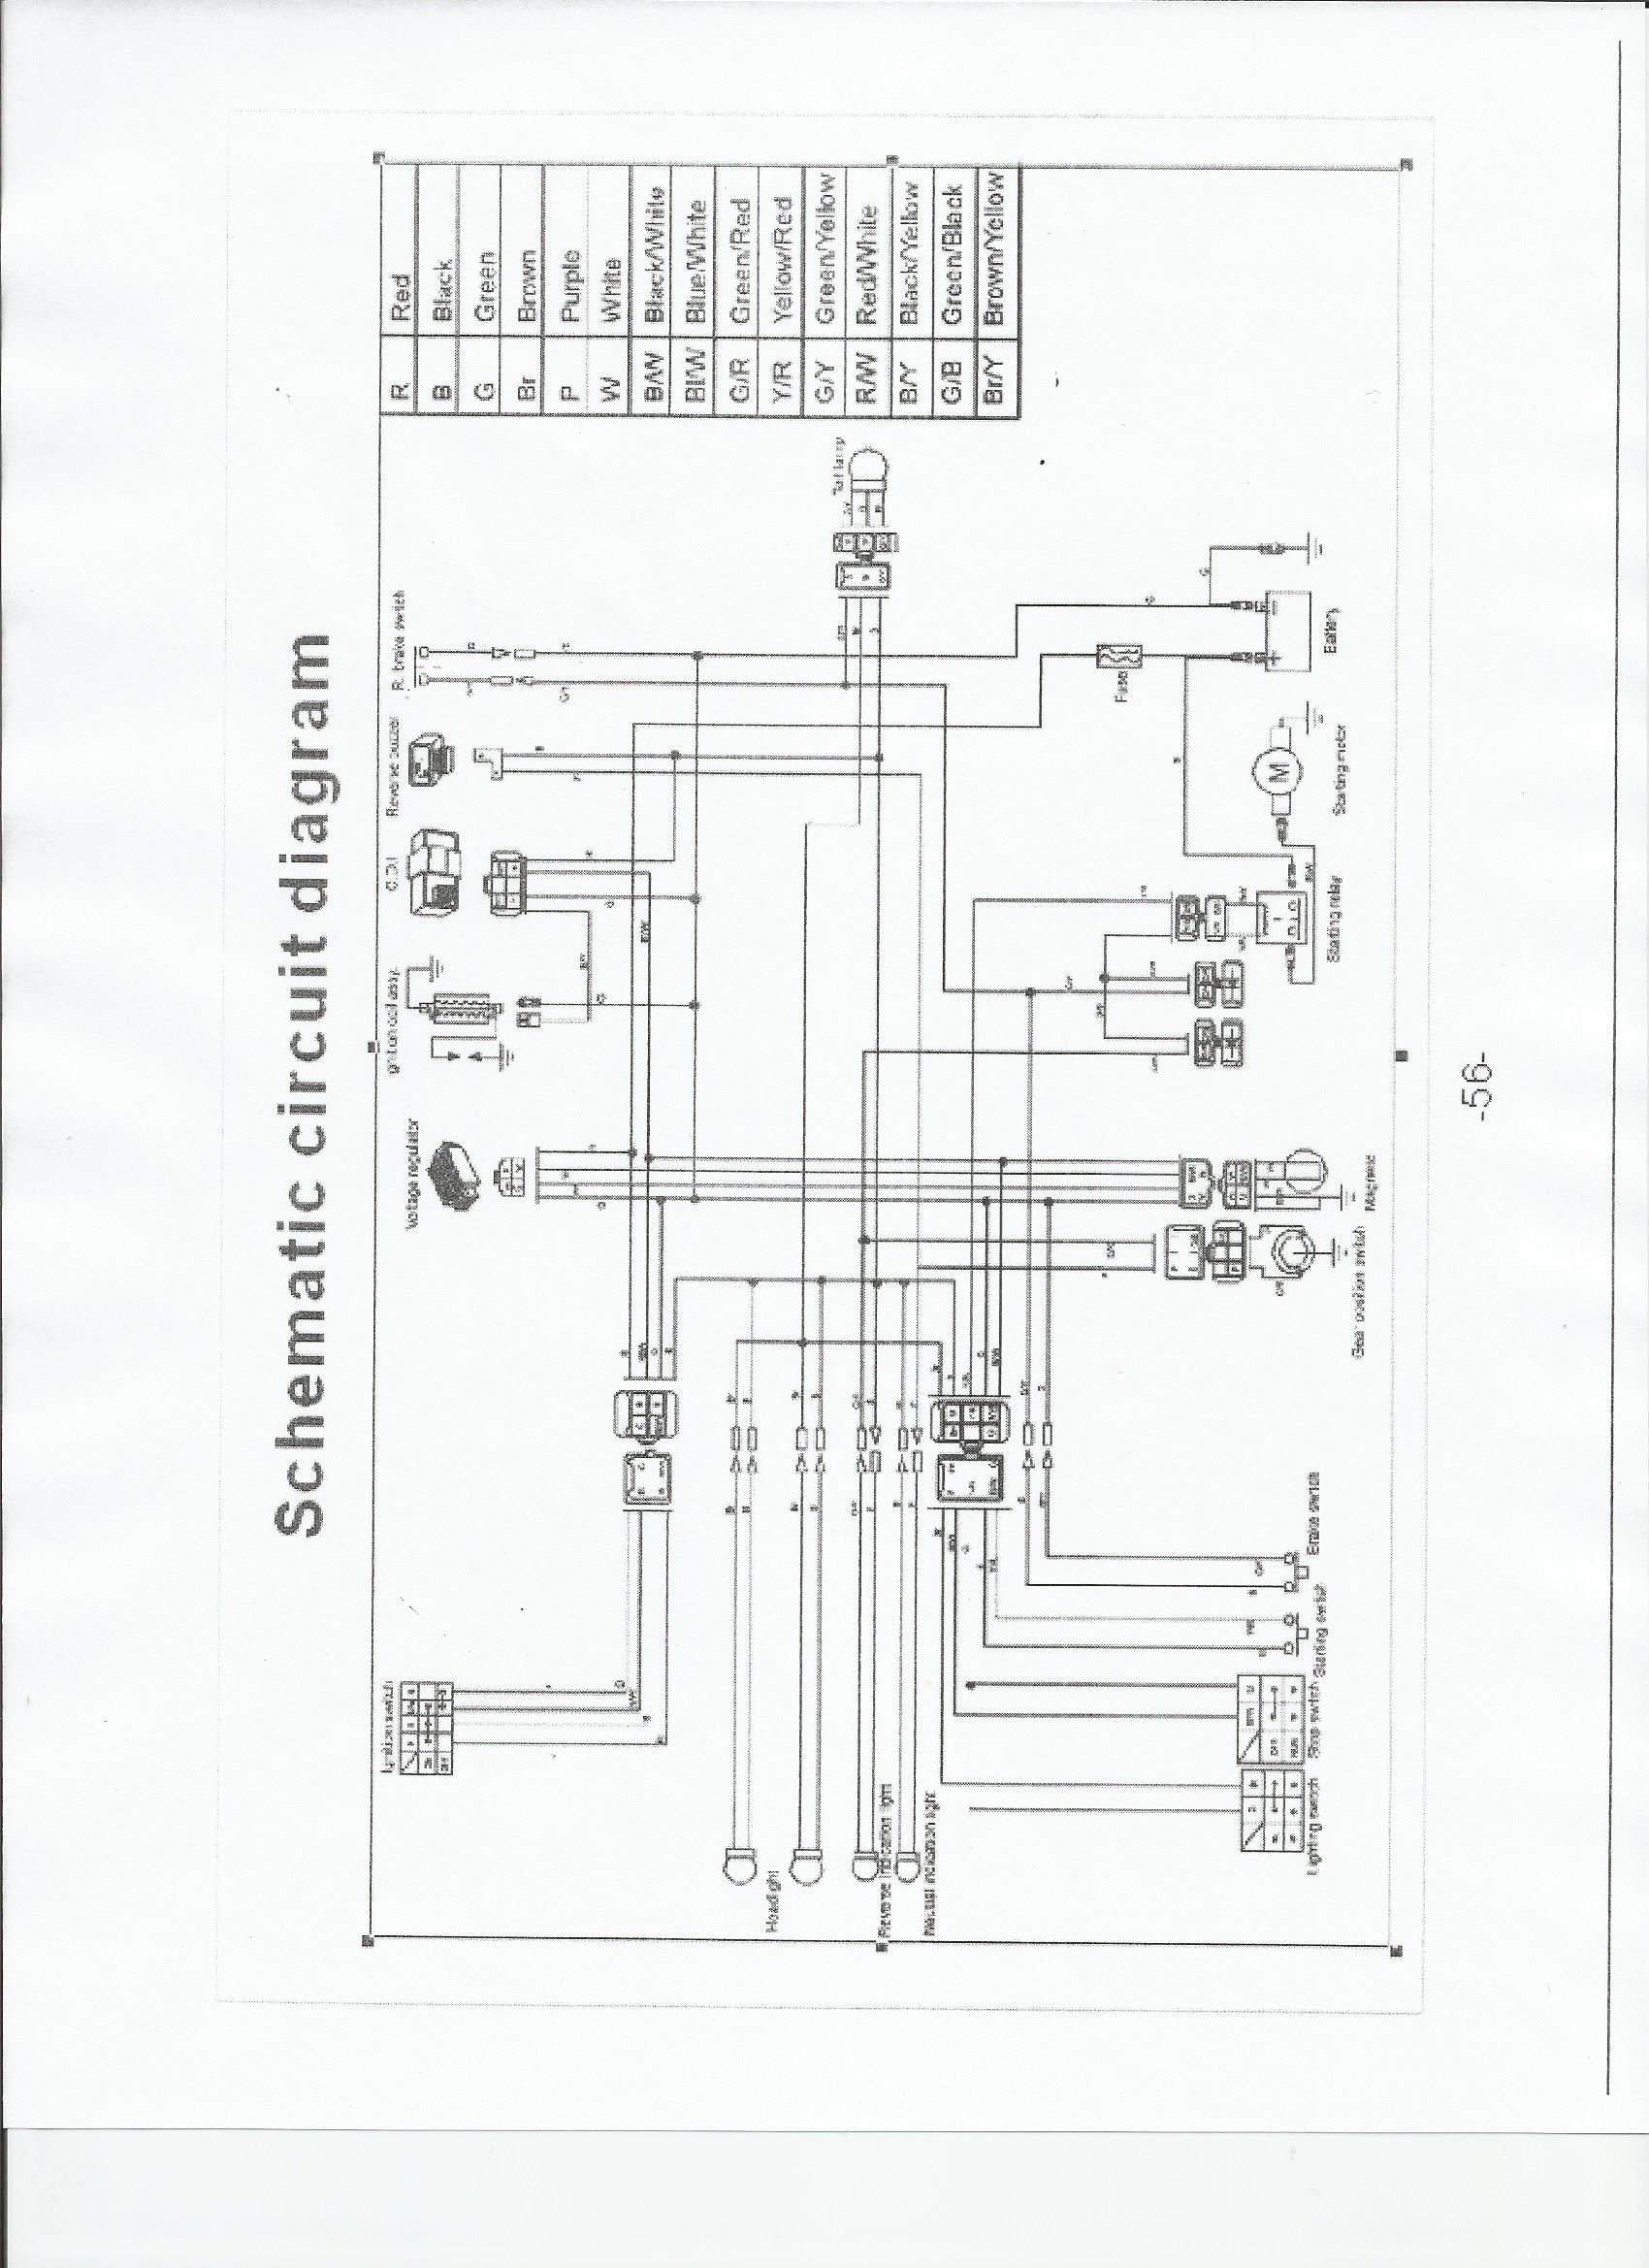 tao tao wiring schematic taotao mini and youth atv wiring schematic familygokarts support tao tao 250cc atv wiring diagram at crackthecode.co